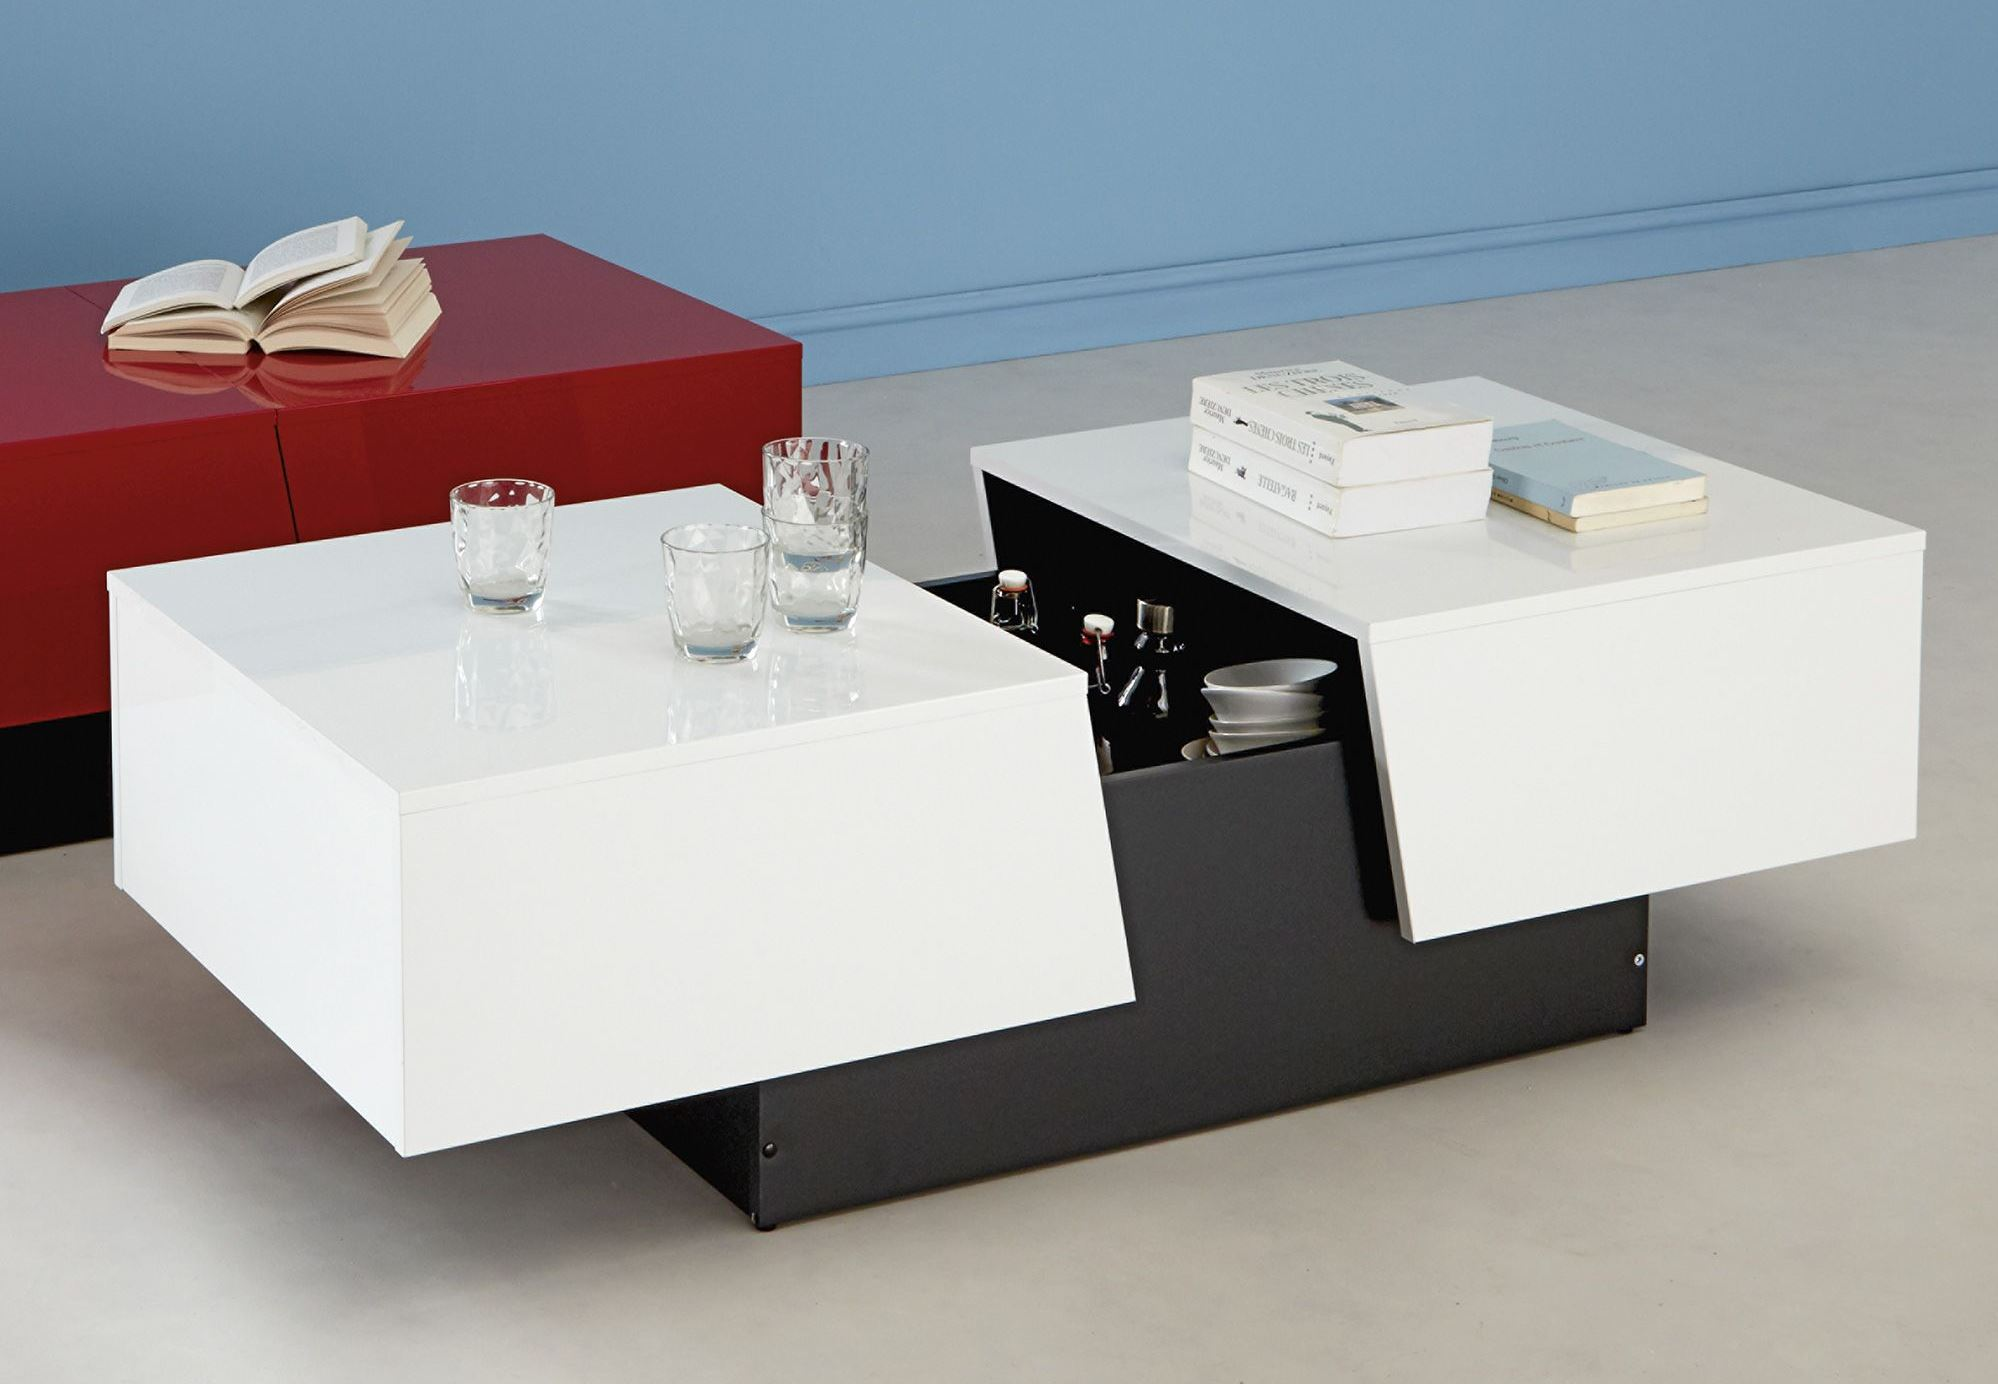 alinea Meilleur De De Table Basse Metal Verre